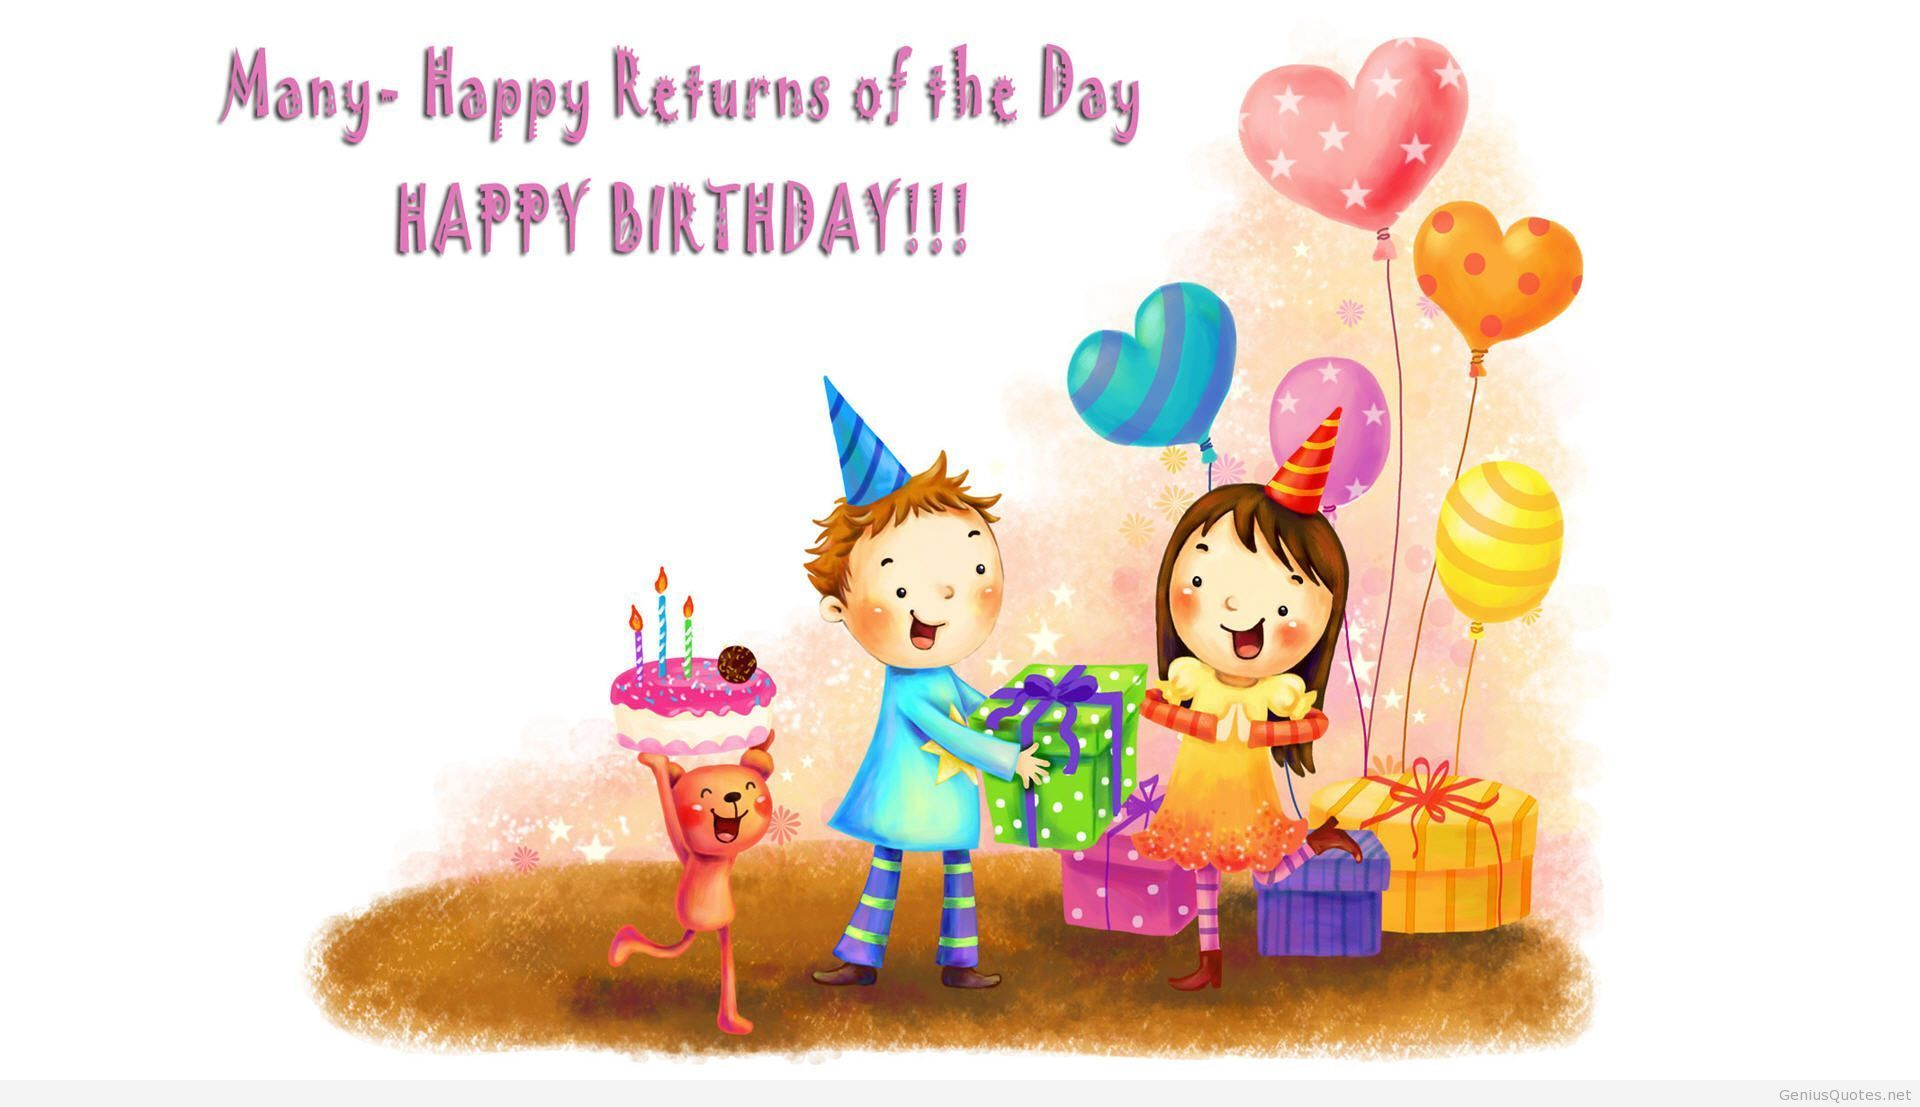 happy birthday images free pics download for android desktop